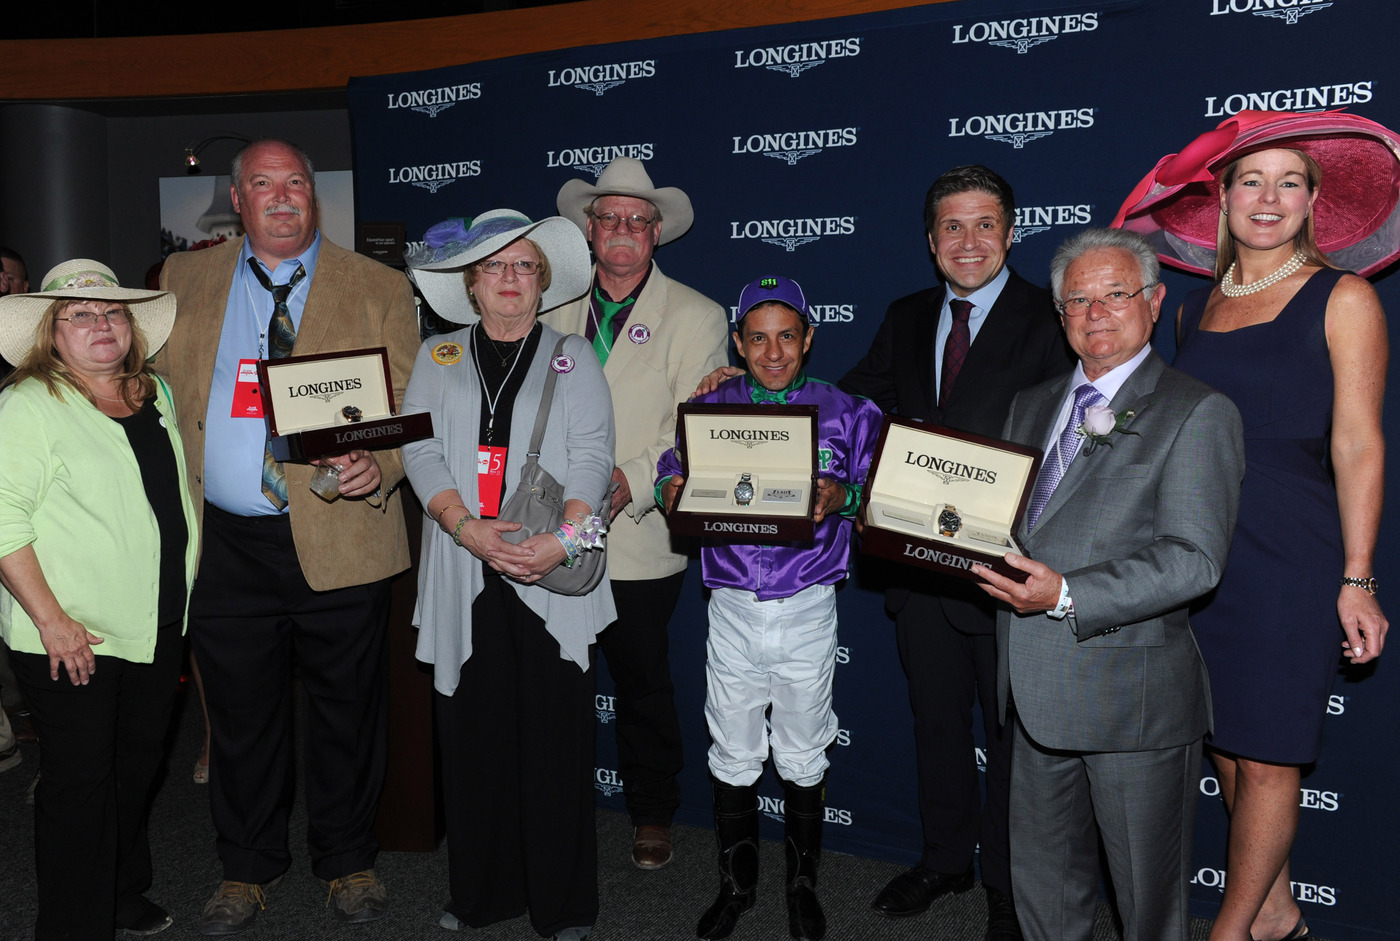 Longines Flat Racing Event: California Chrome wins the 140 Kentucky Derby 3